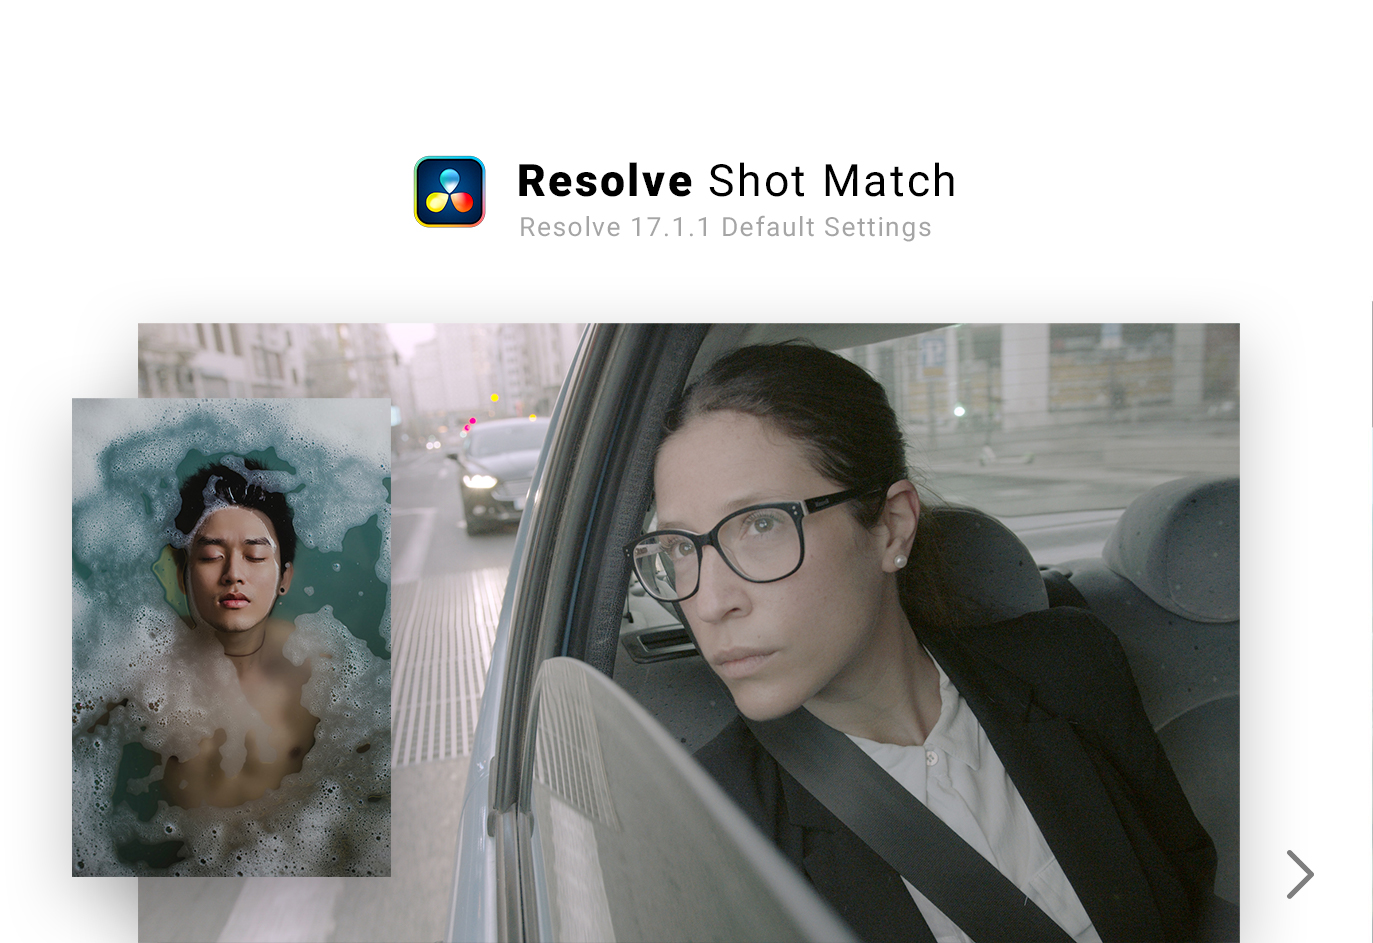 Davinci Resolve Shot Match Feature for Color Grading automatically